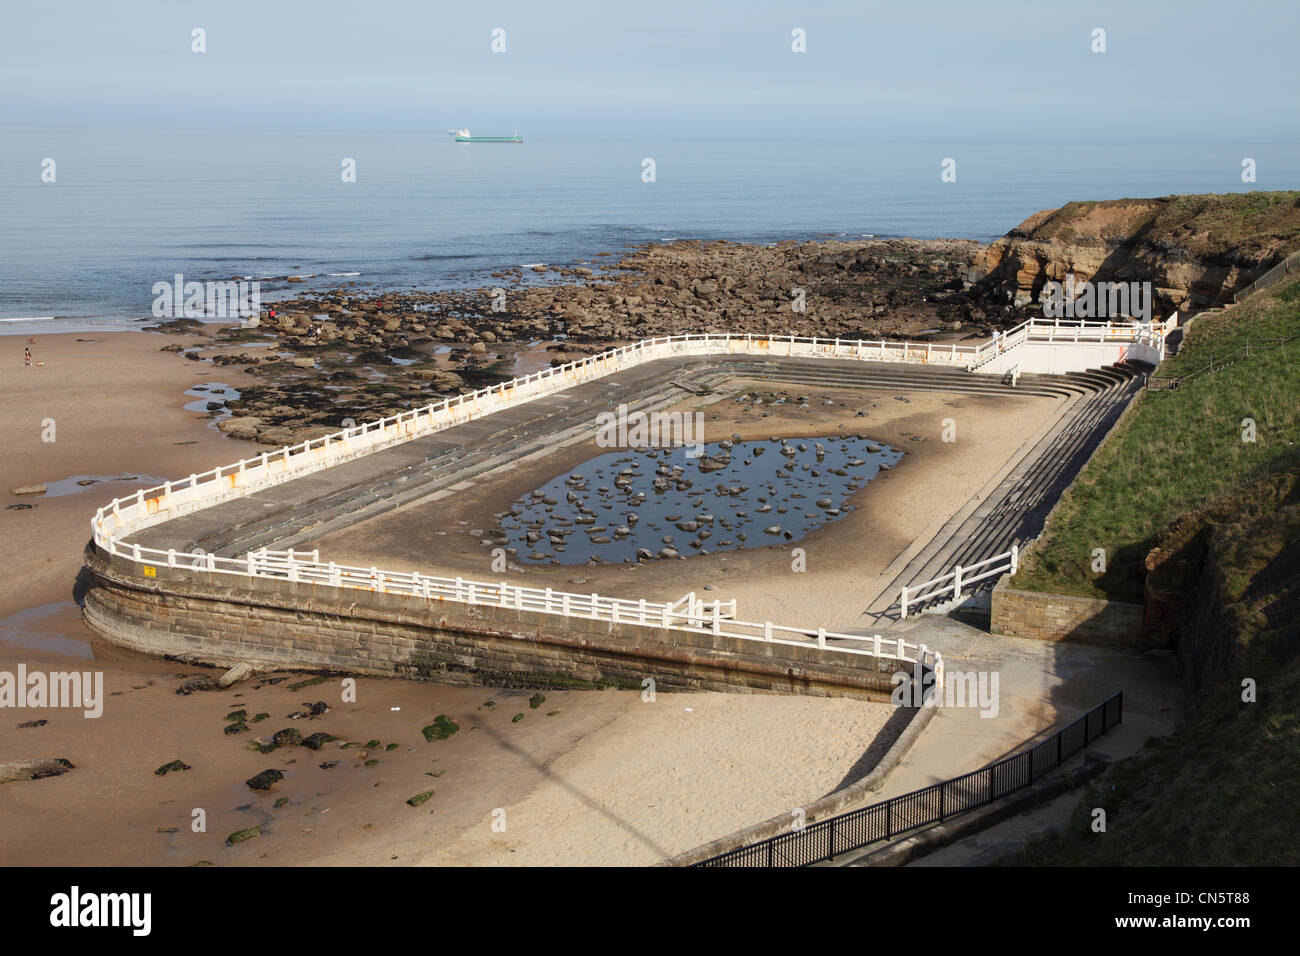 The disused outdoor tidal swimming pool at tynemouth north east stock photo royalty free image for Swimming pools in the north east